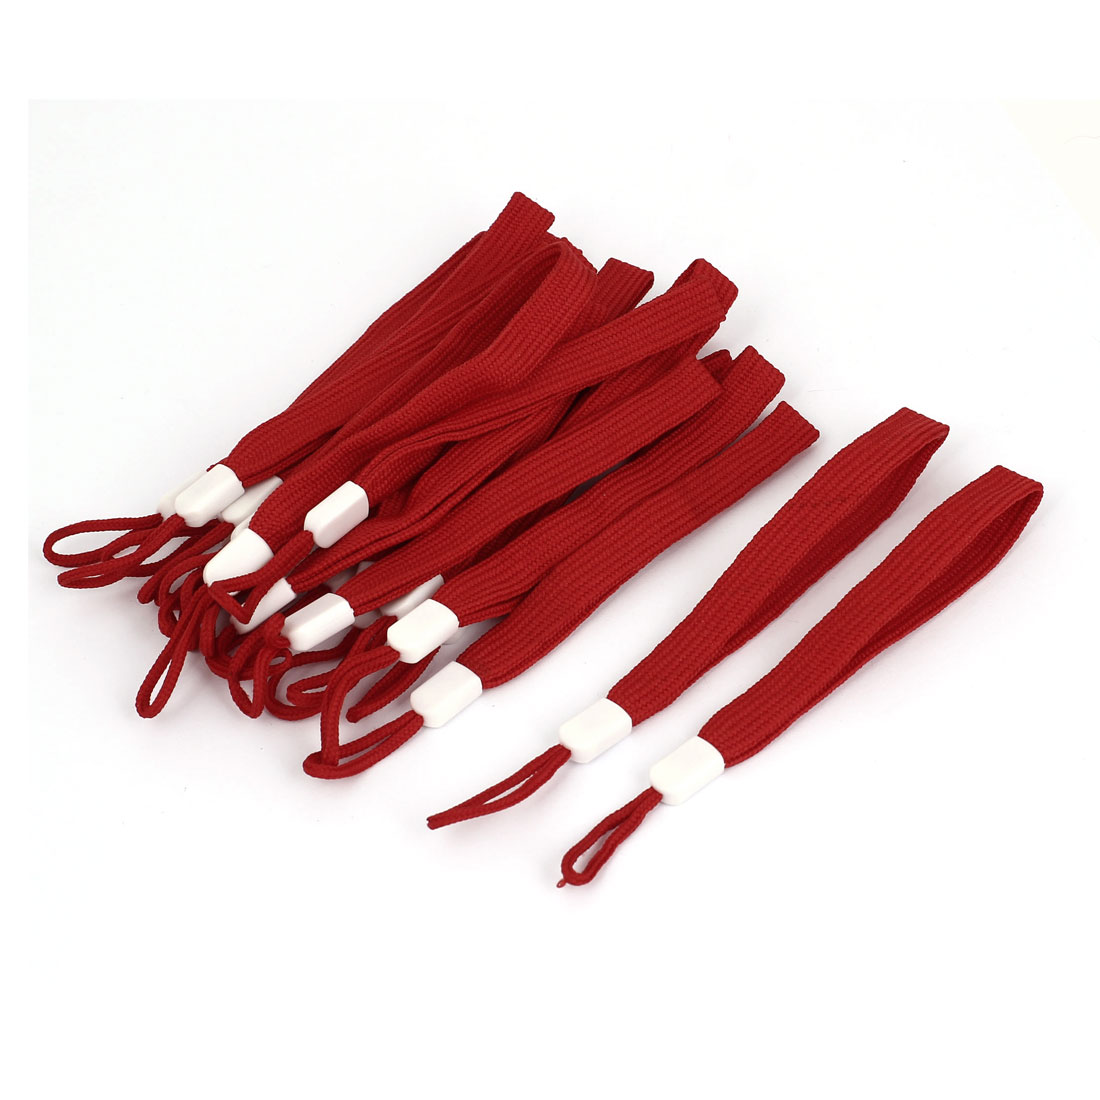 16cm Length Lanyard Strap Hang Rope 20Pcs Deep Red for Smartphone Selfie Stick